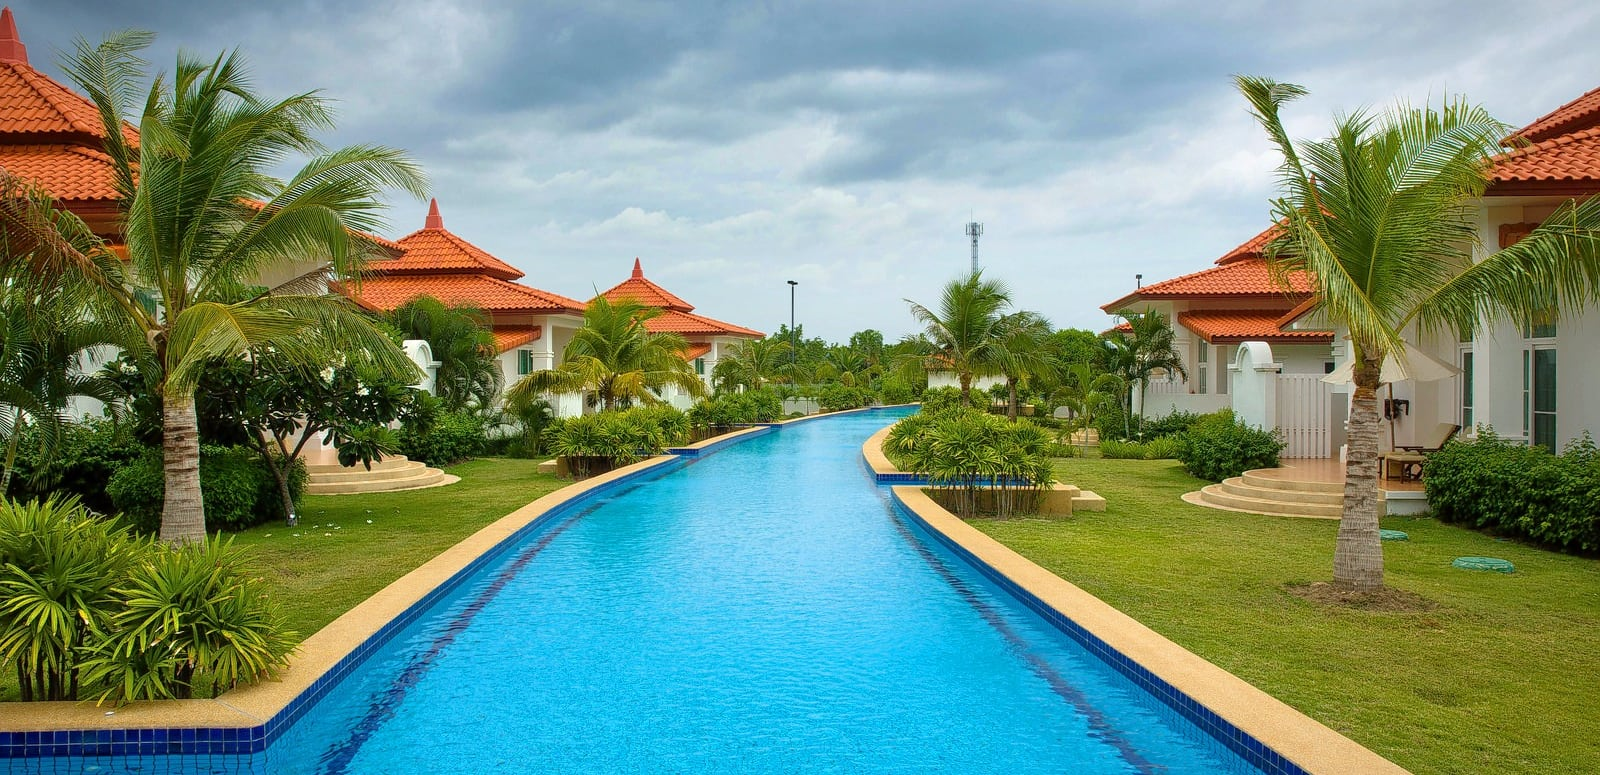 a39935a3a1f4 20 Best Luxury Resorts near Mumbai - 2019 (Photos   Reviews)